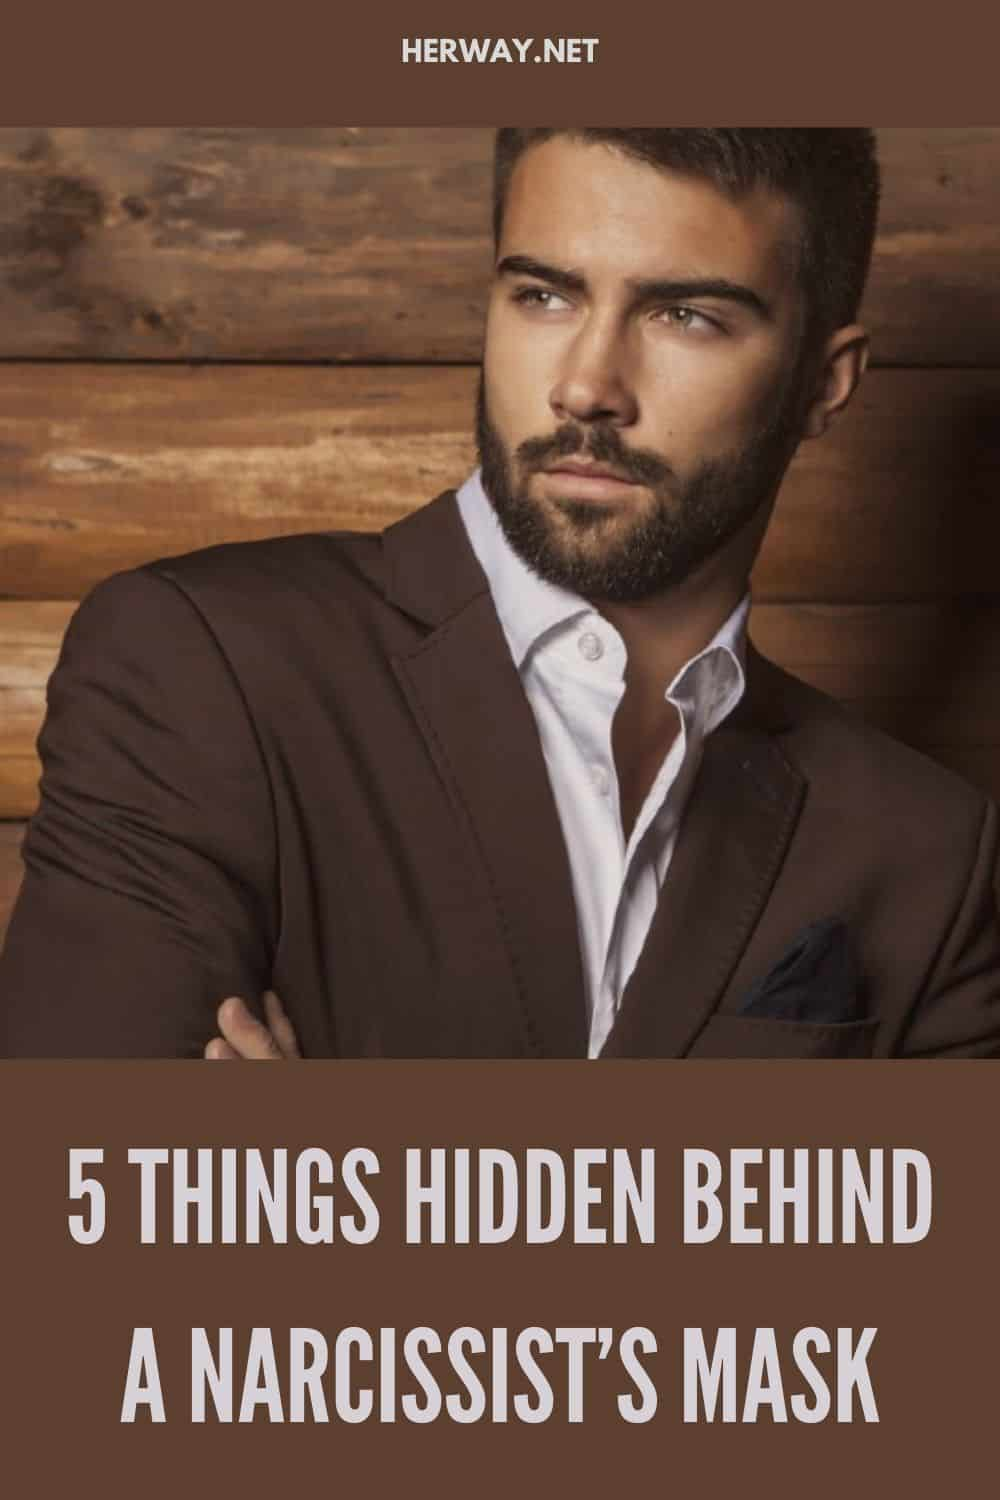 5 Things Hidden Behind A Narcissist's Mask